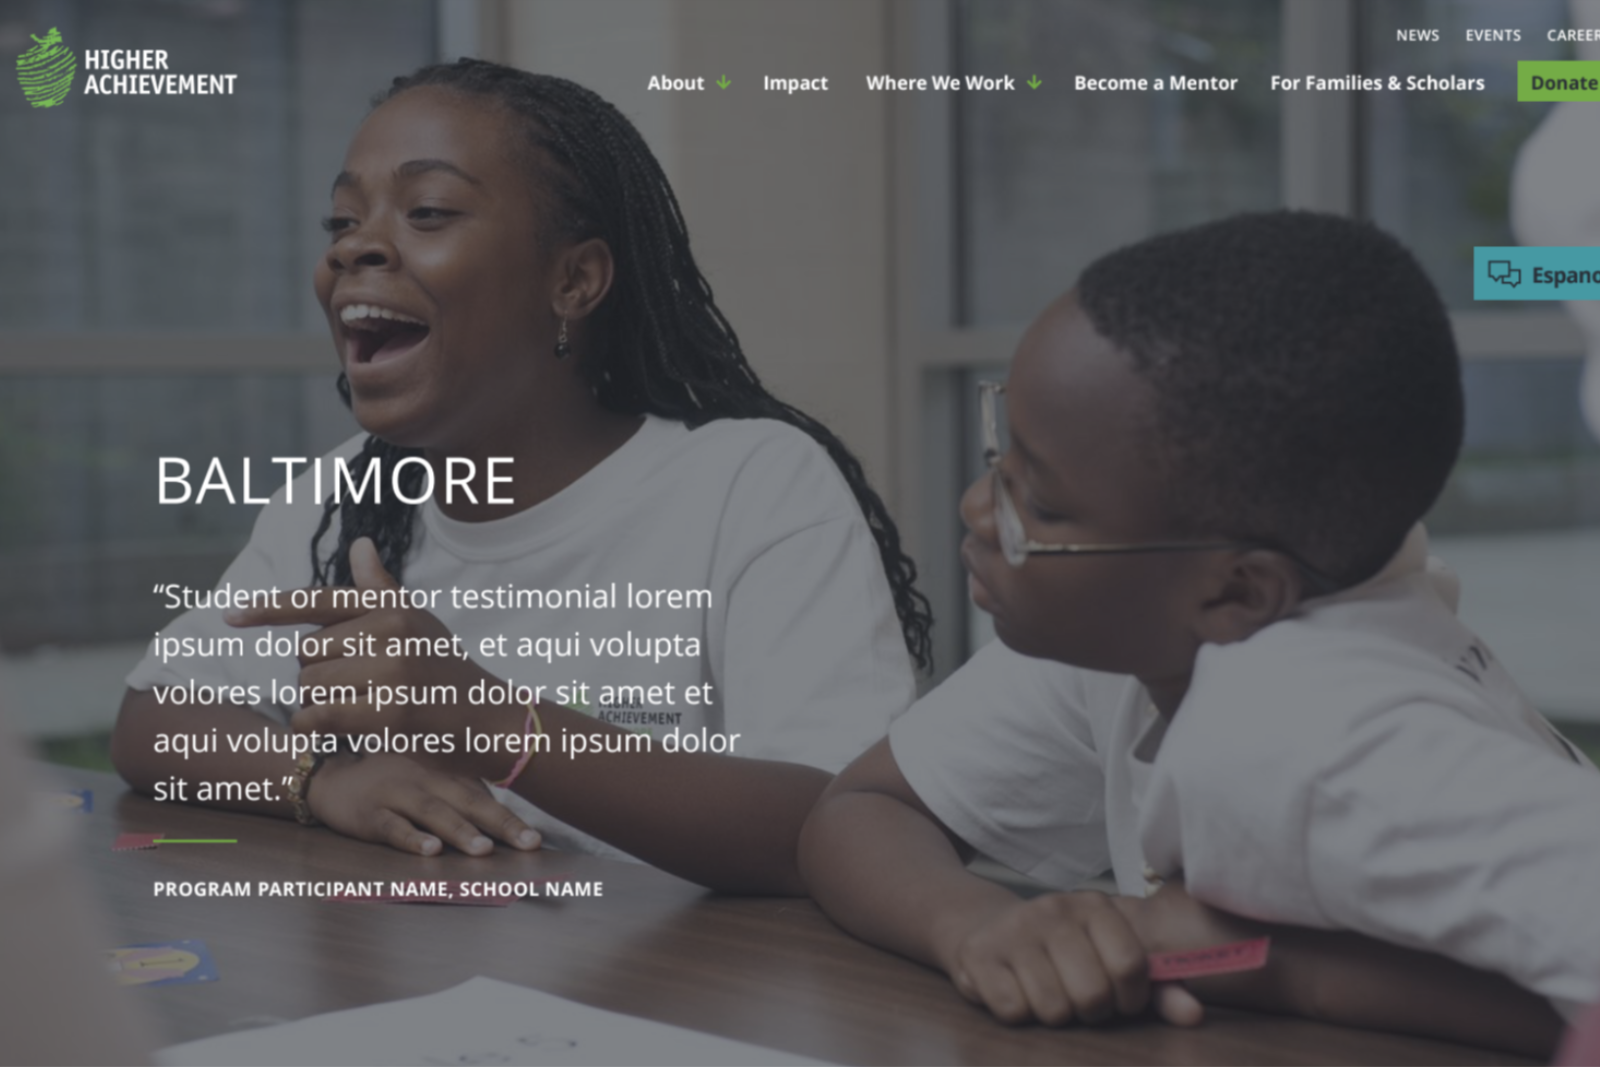 Baltimore homepage